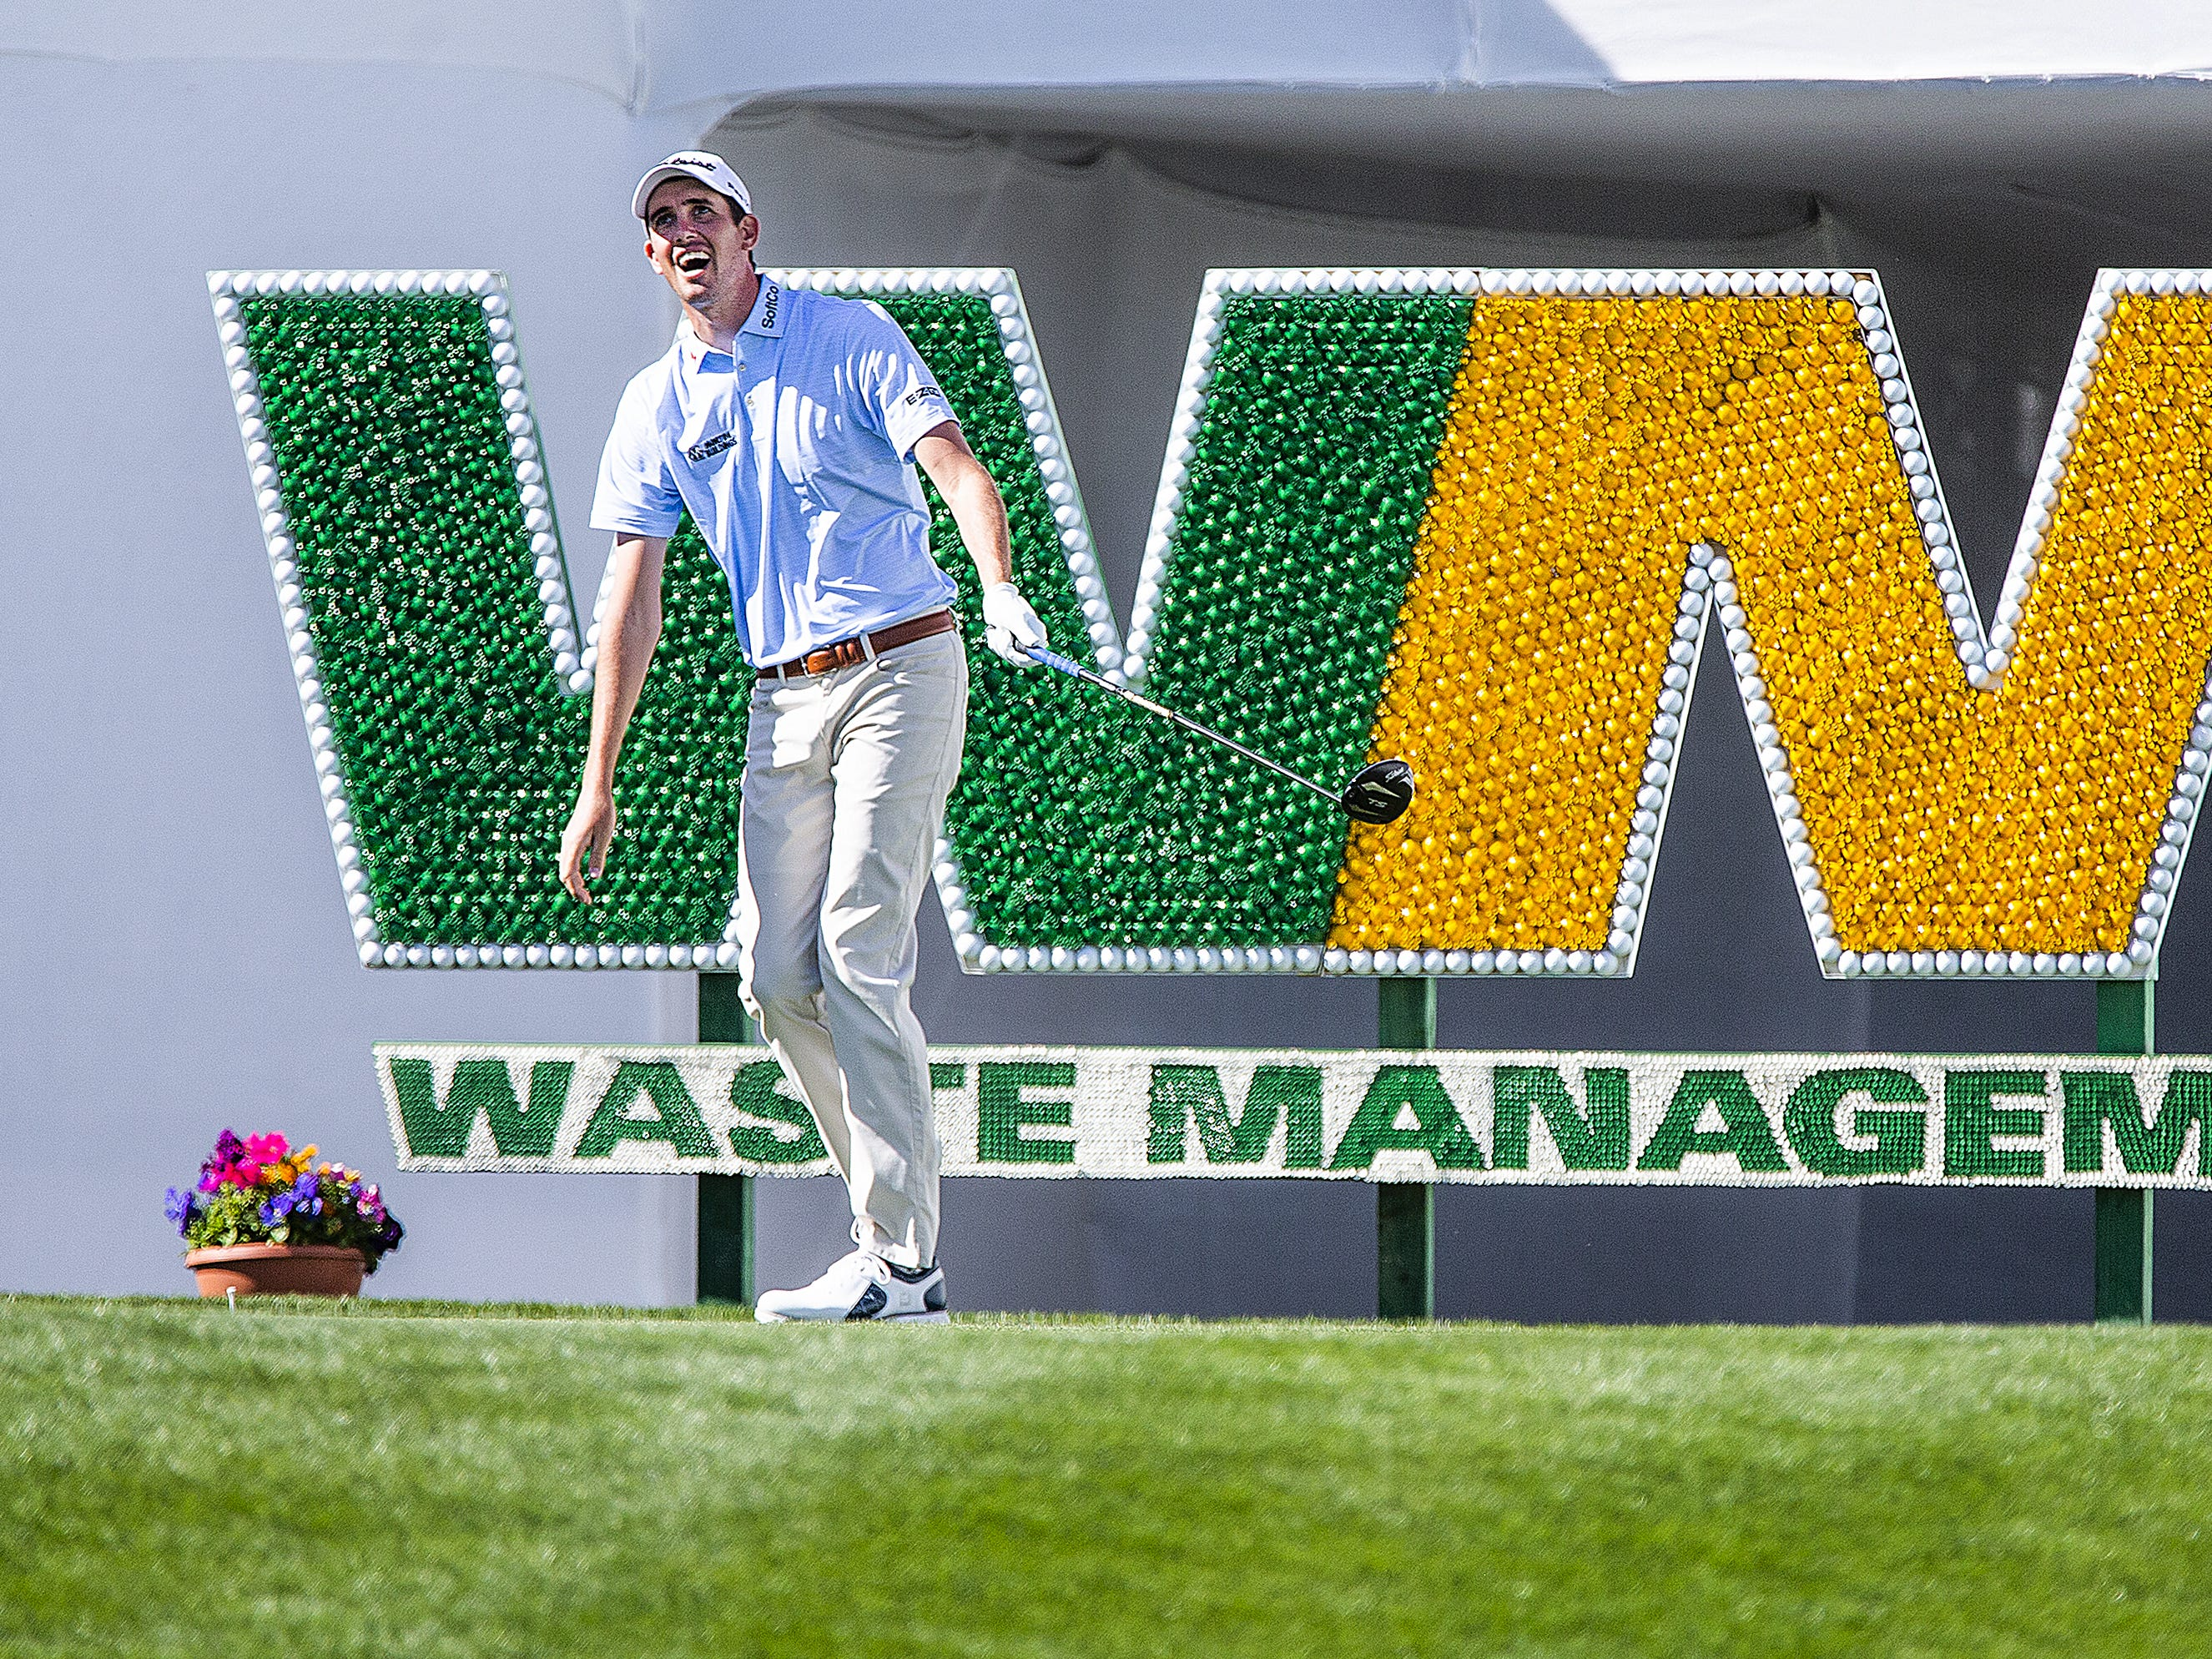 Chesson Hadley watches his shot off the 17th tee during the Kadima.Ventures Pro-Am at the Waste Management Phoenix Open at the TPC Scottsdale, Monday, January 28, 2019.